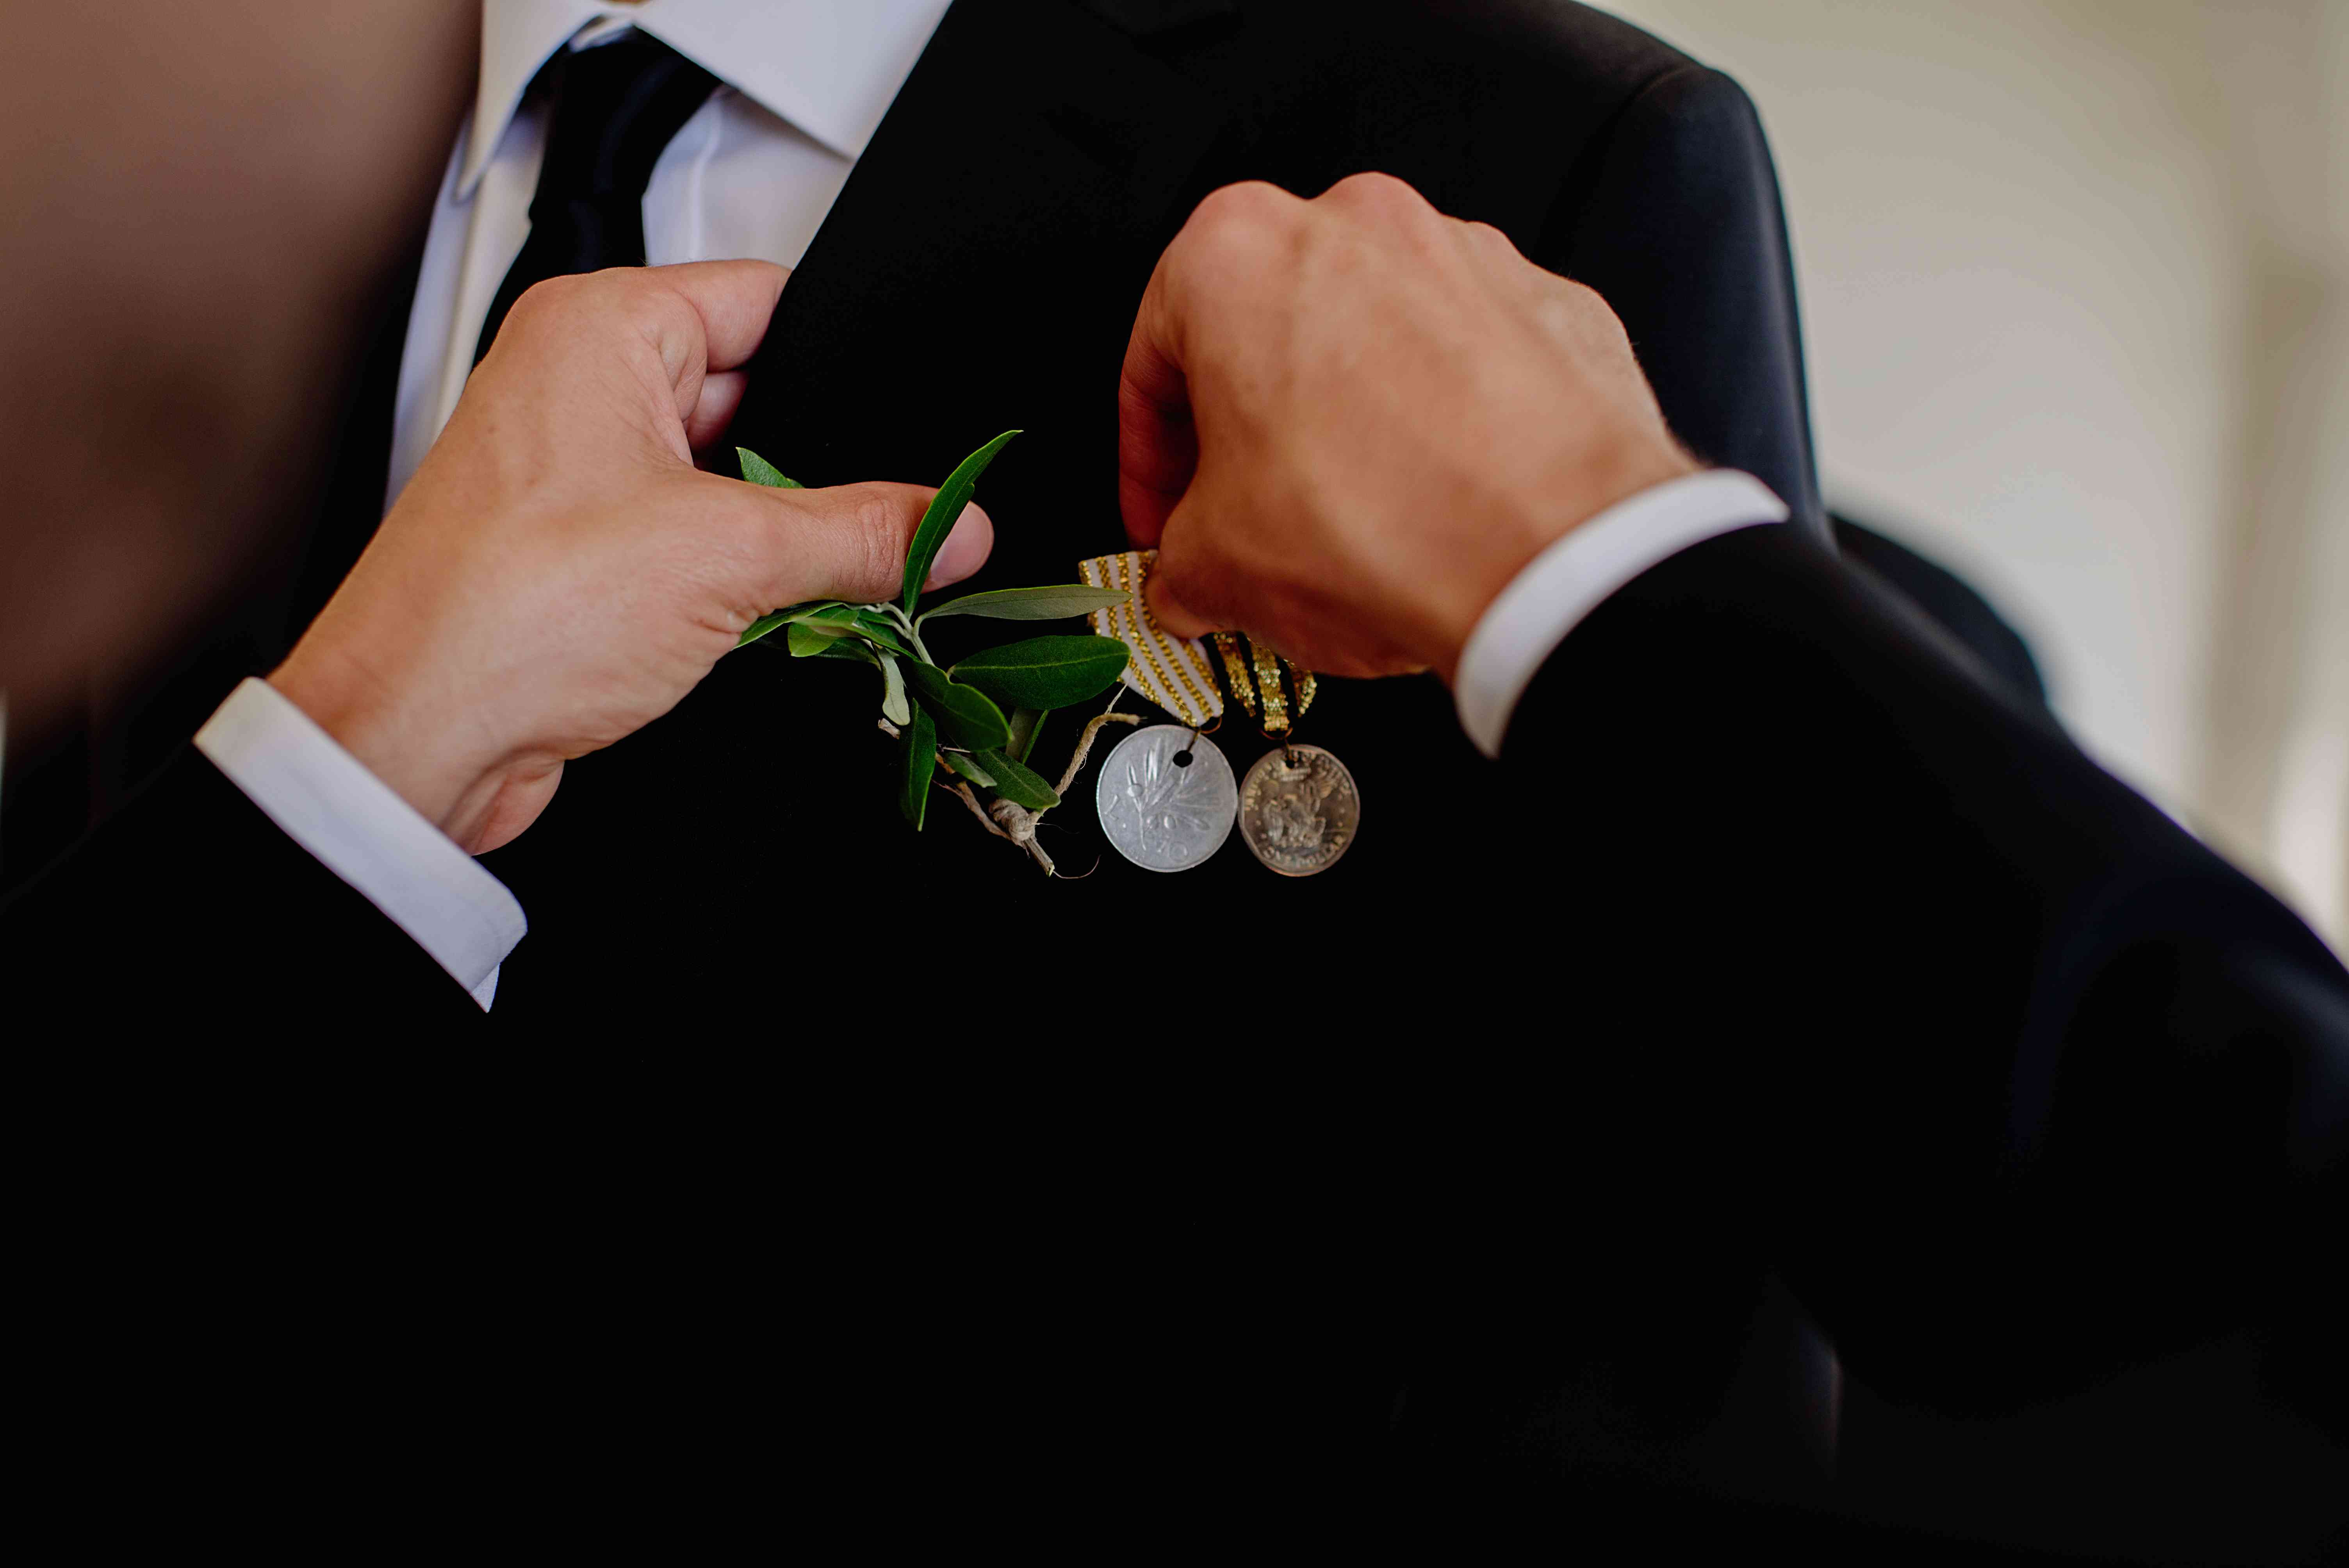 <p>Grooms boutonniere</p><br><br>